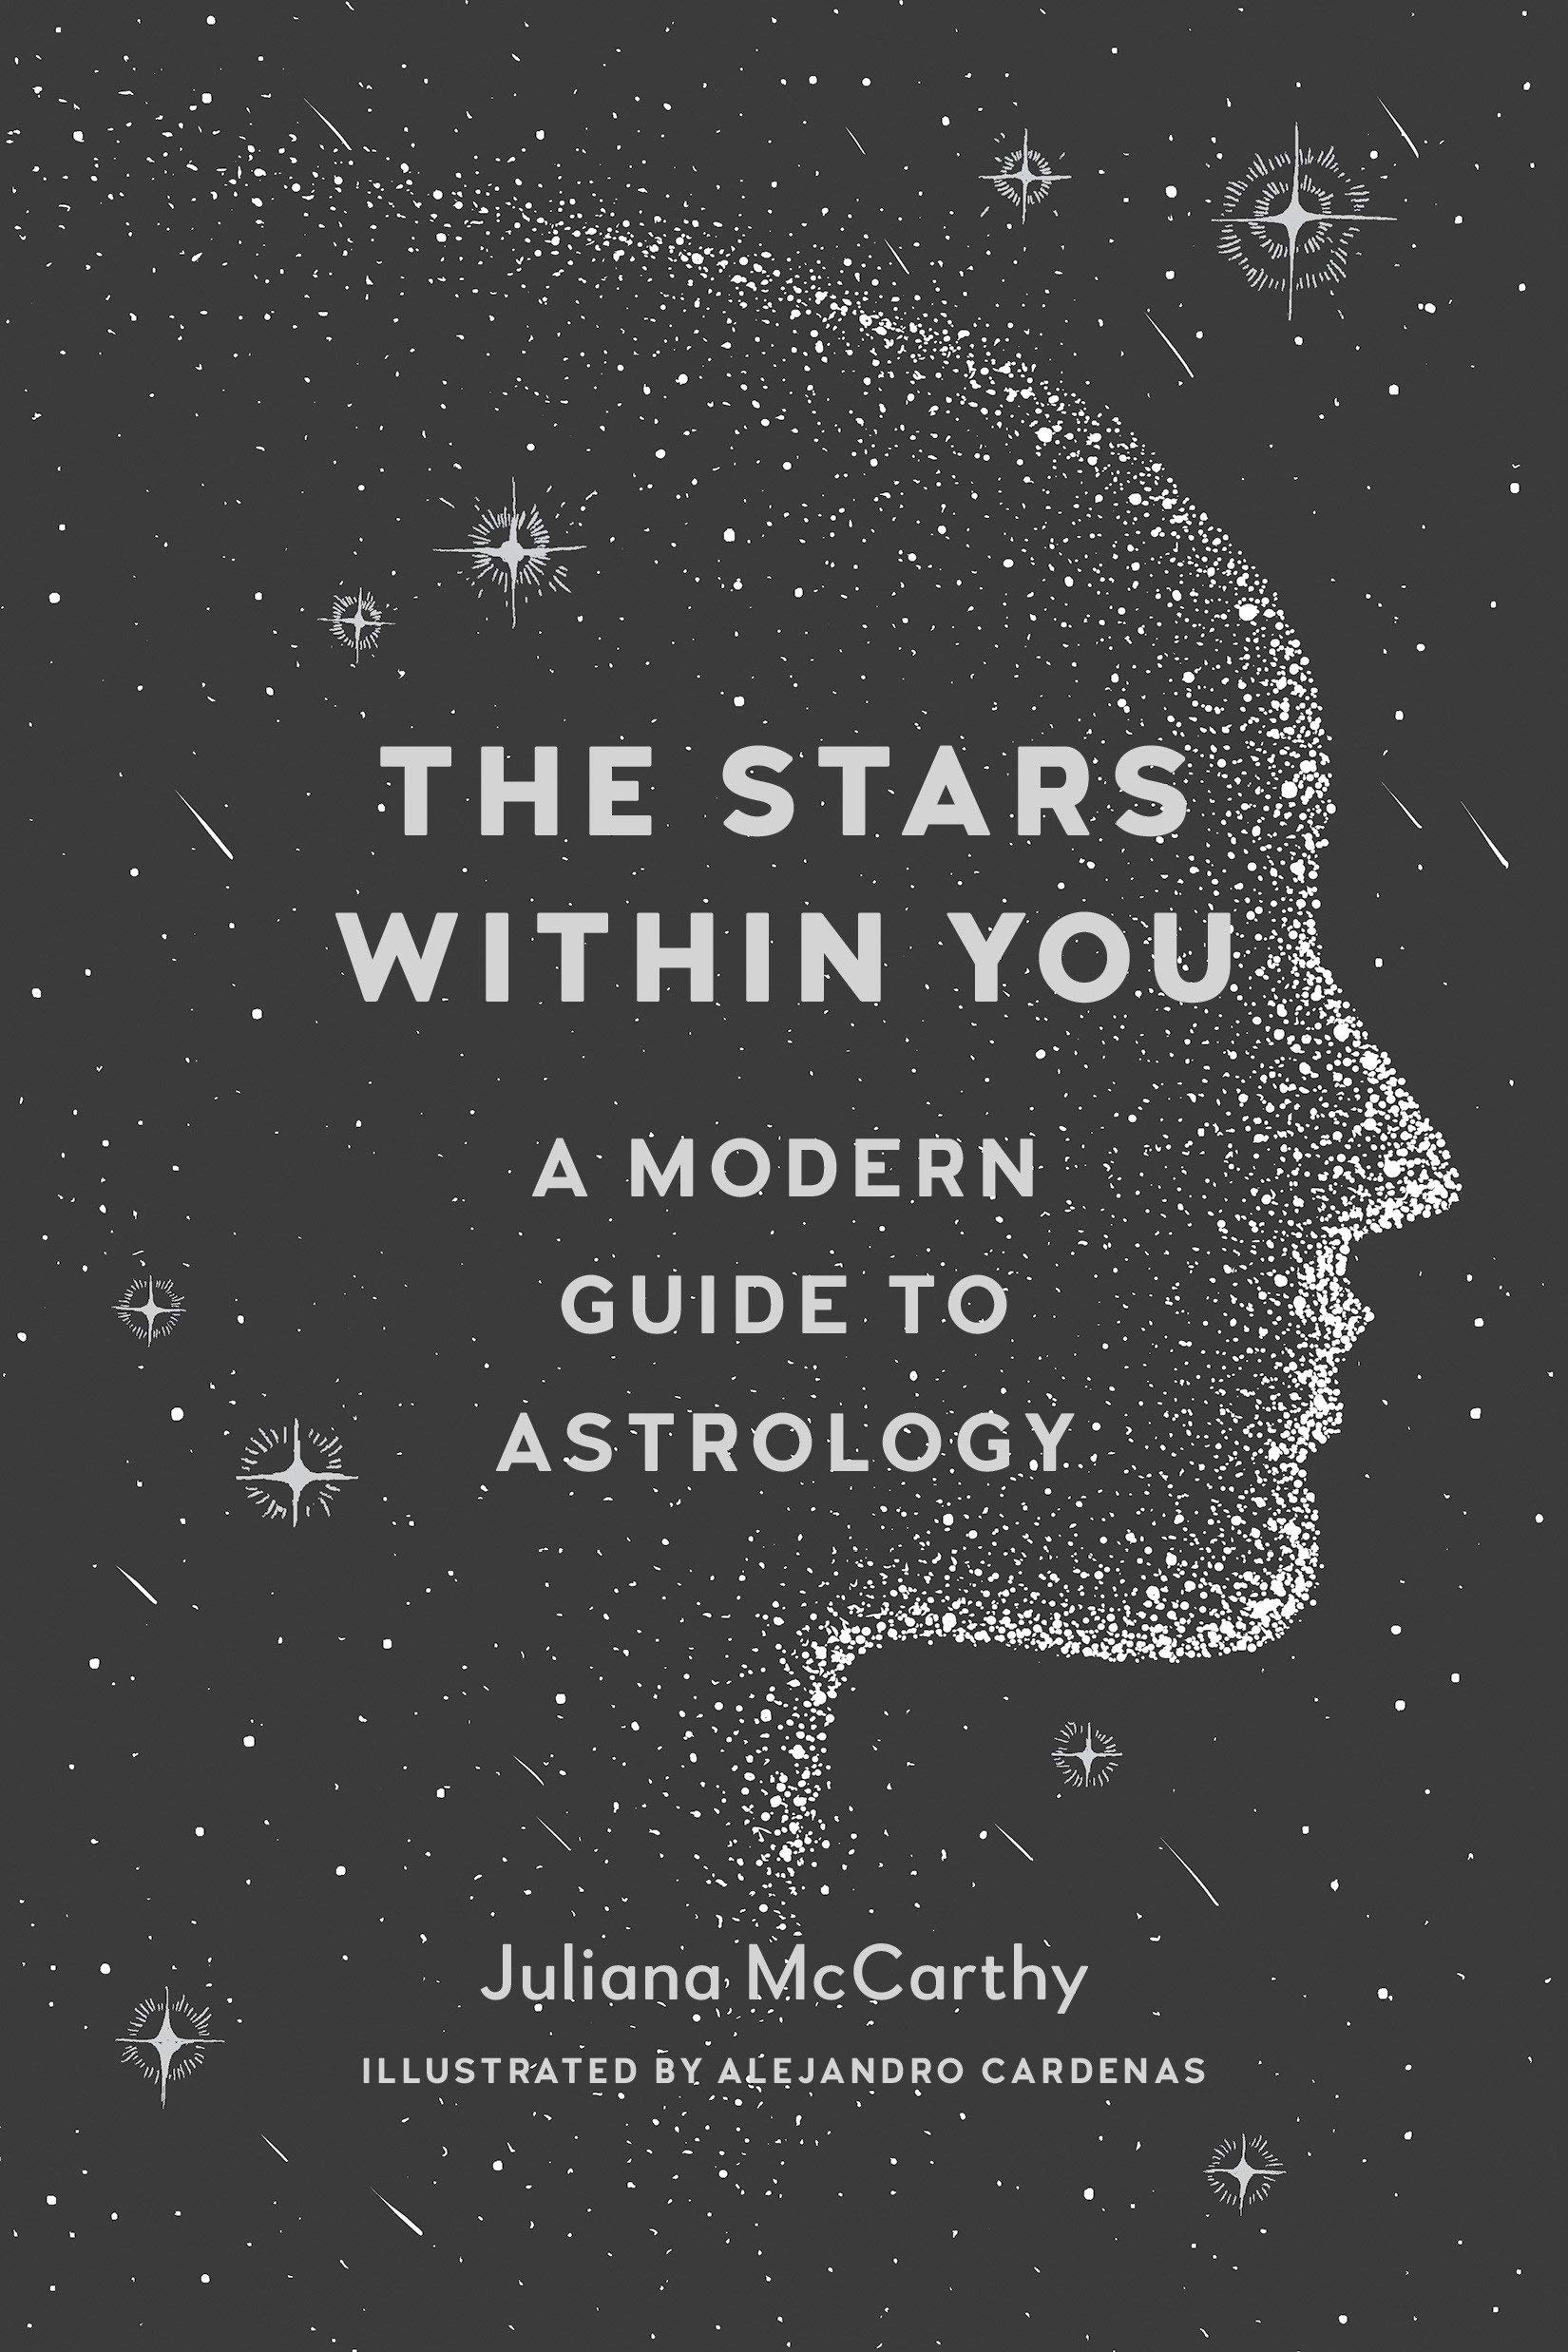 The Stars Within You: A Modern Guide to Astrology: Juliana McCarthy